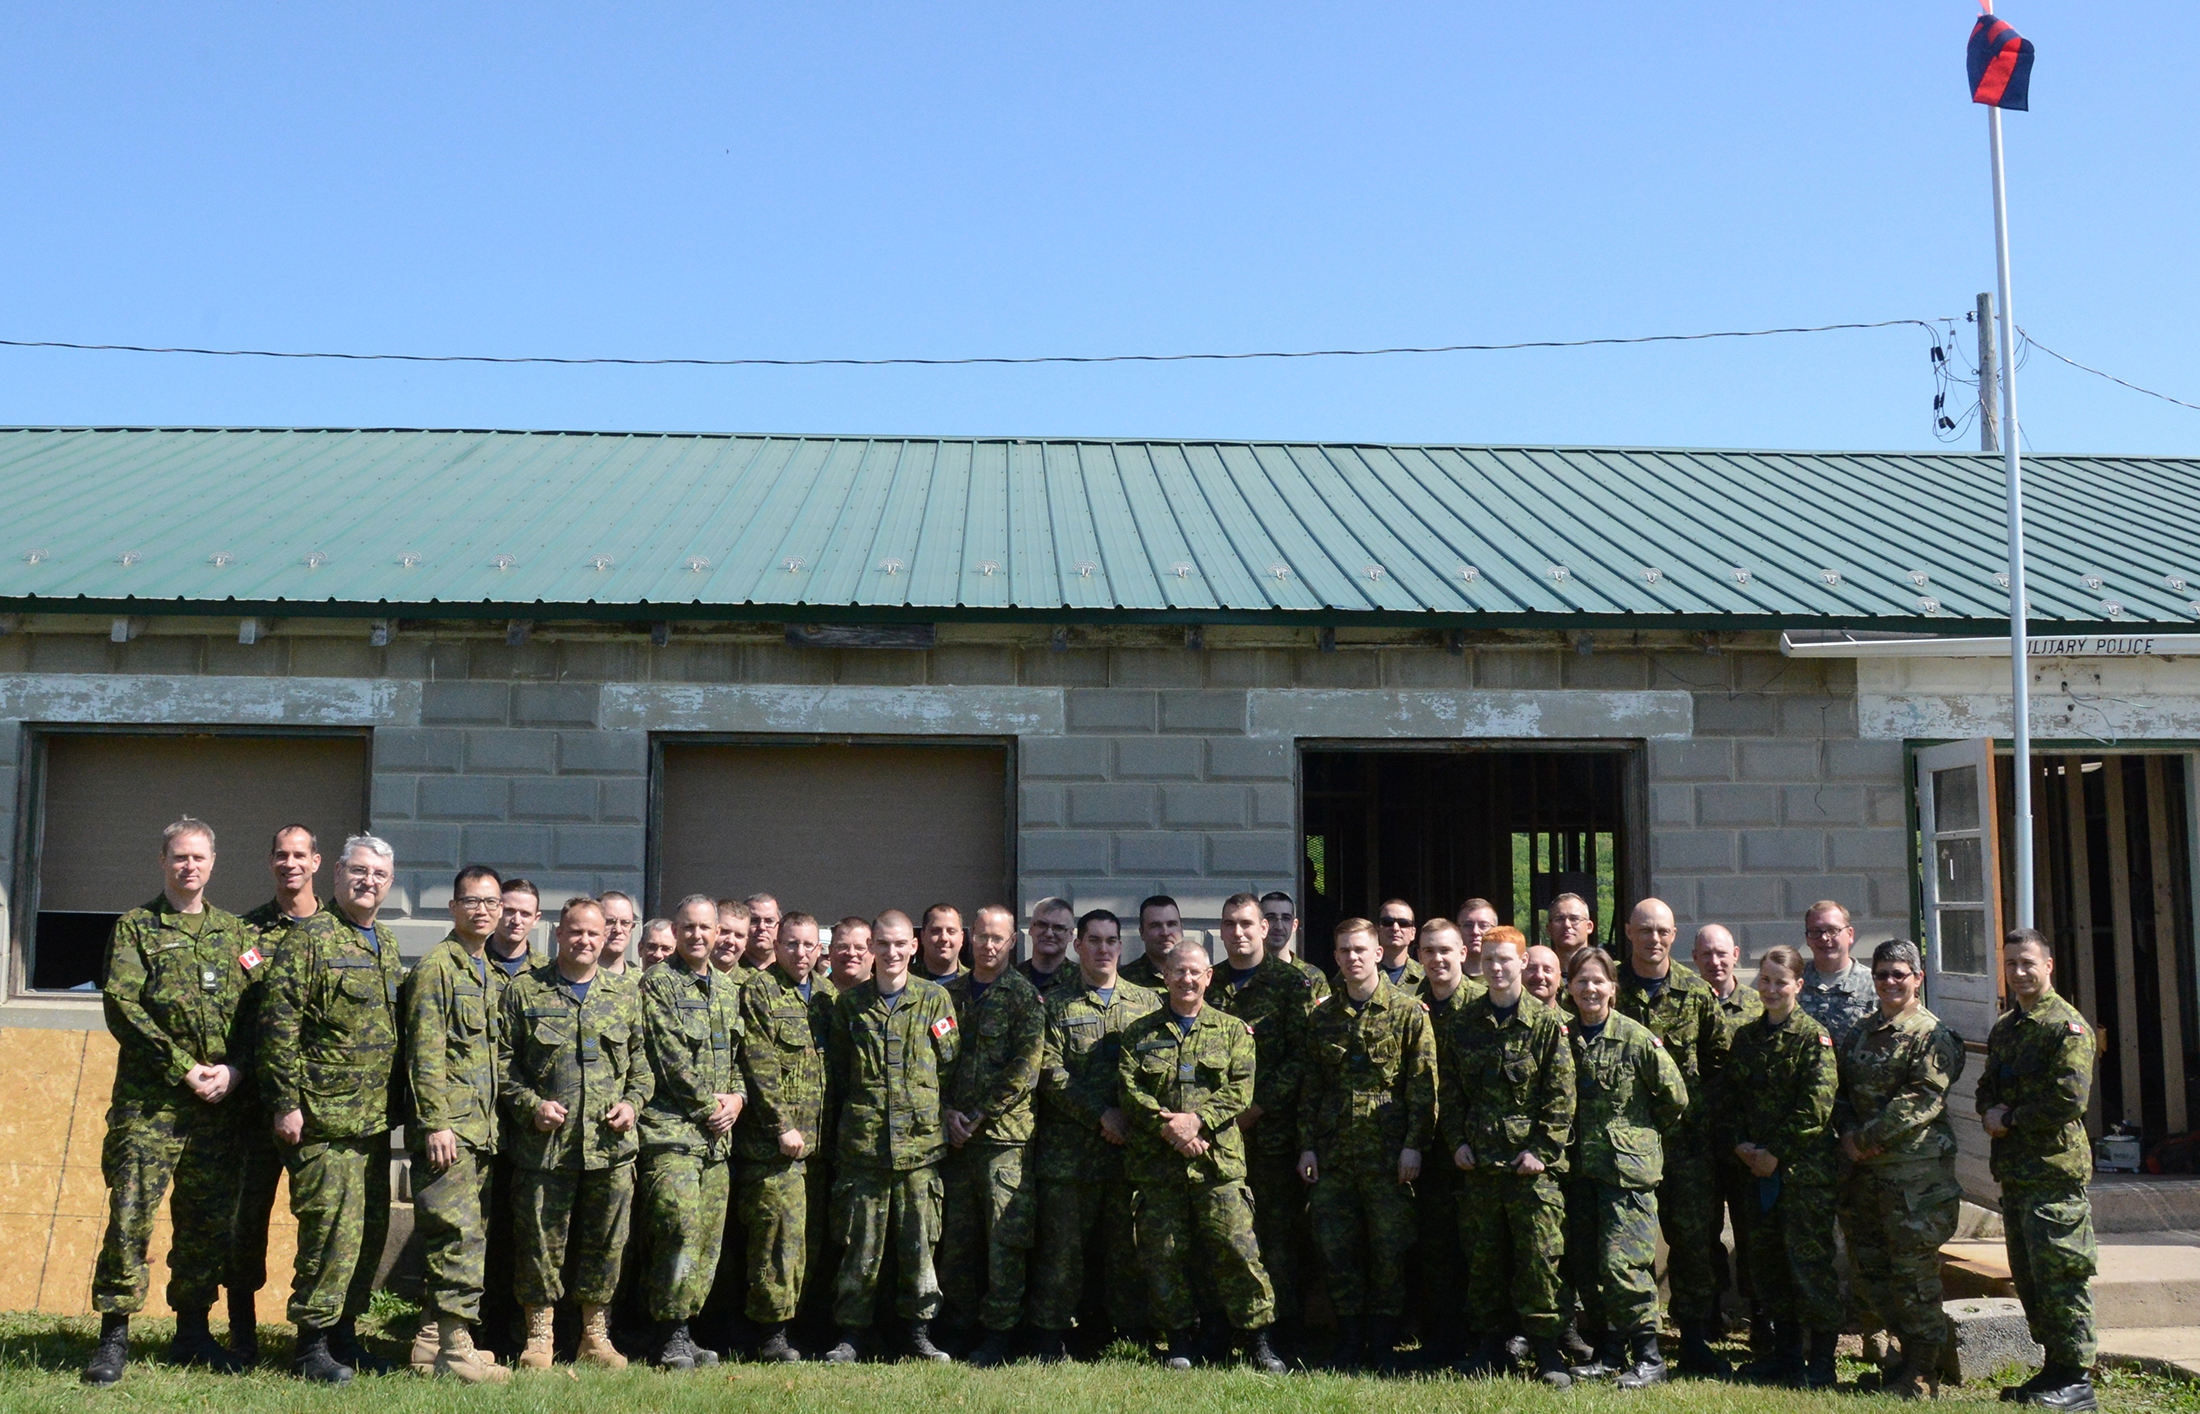 Canadian and American forces gather for a group shot in front of the building the Canadian personnel helped to renovate.